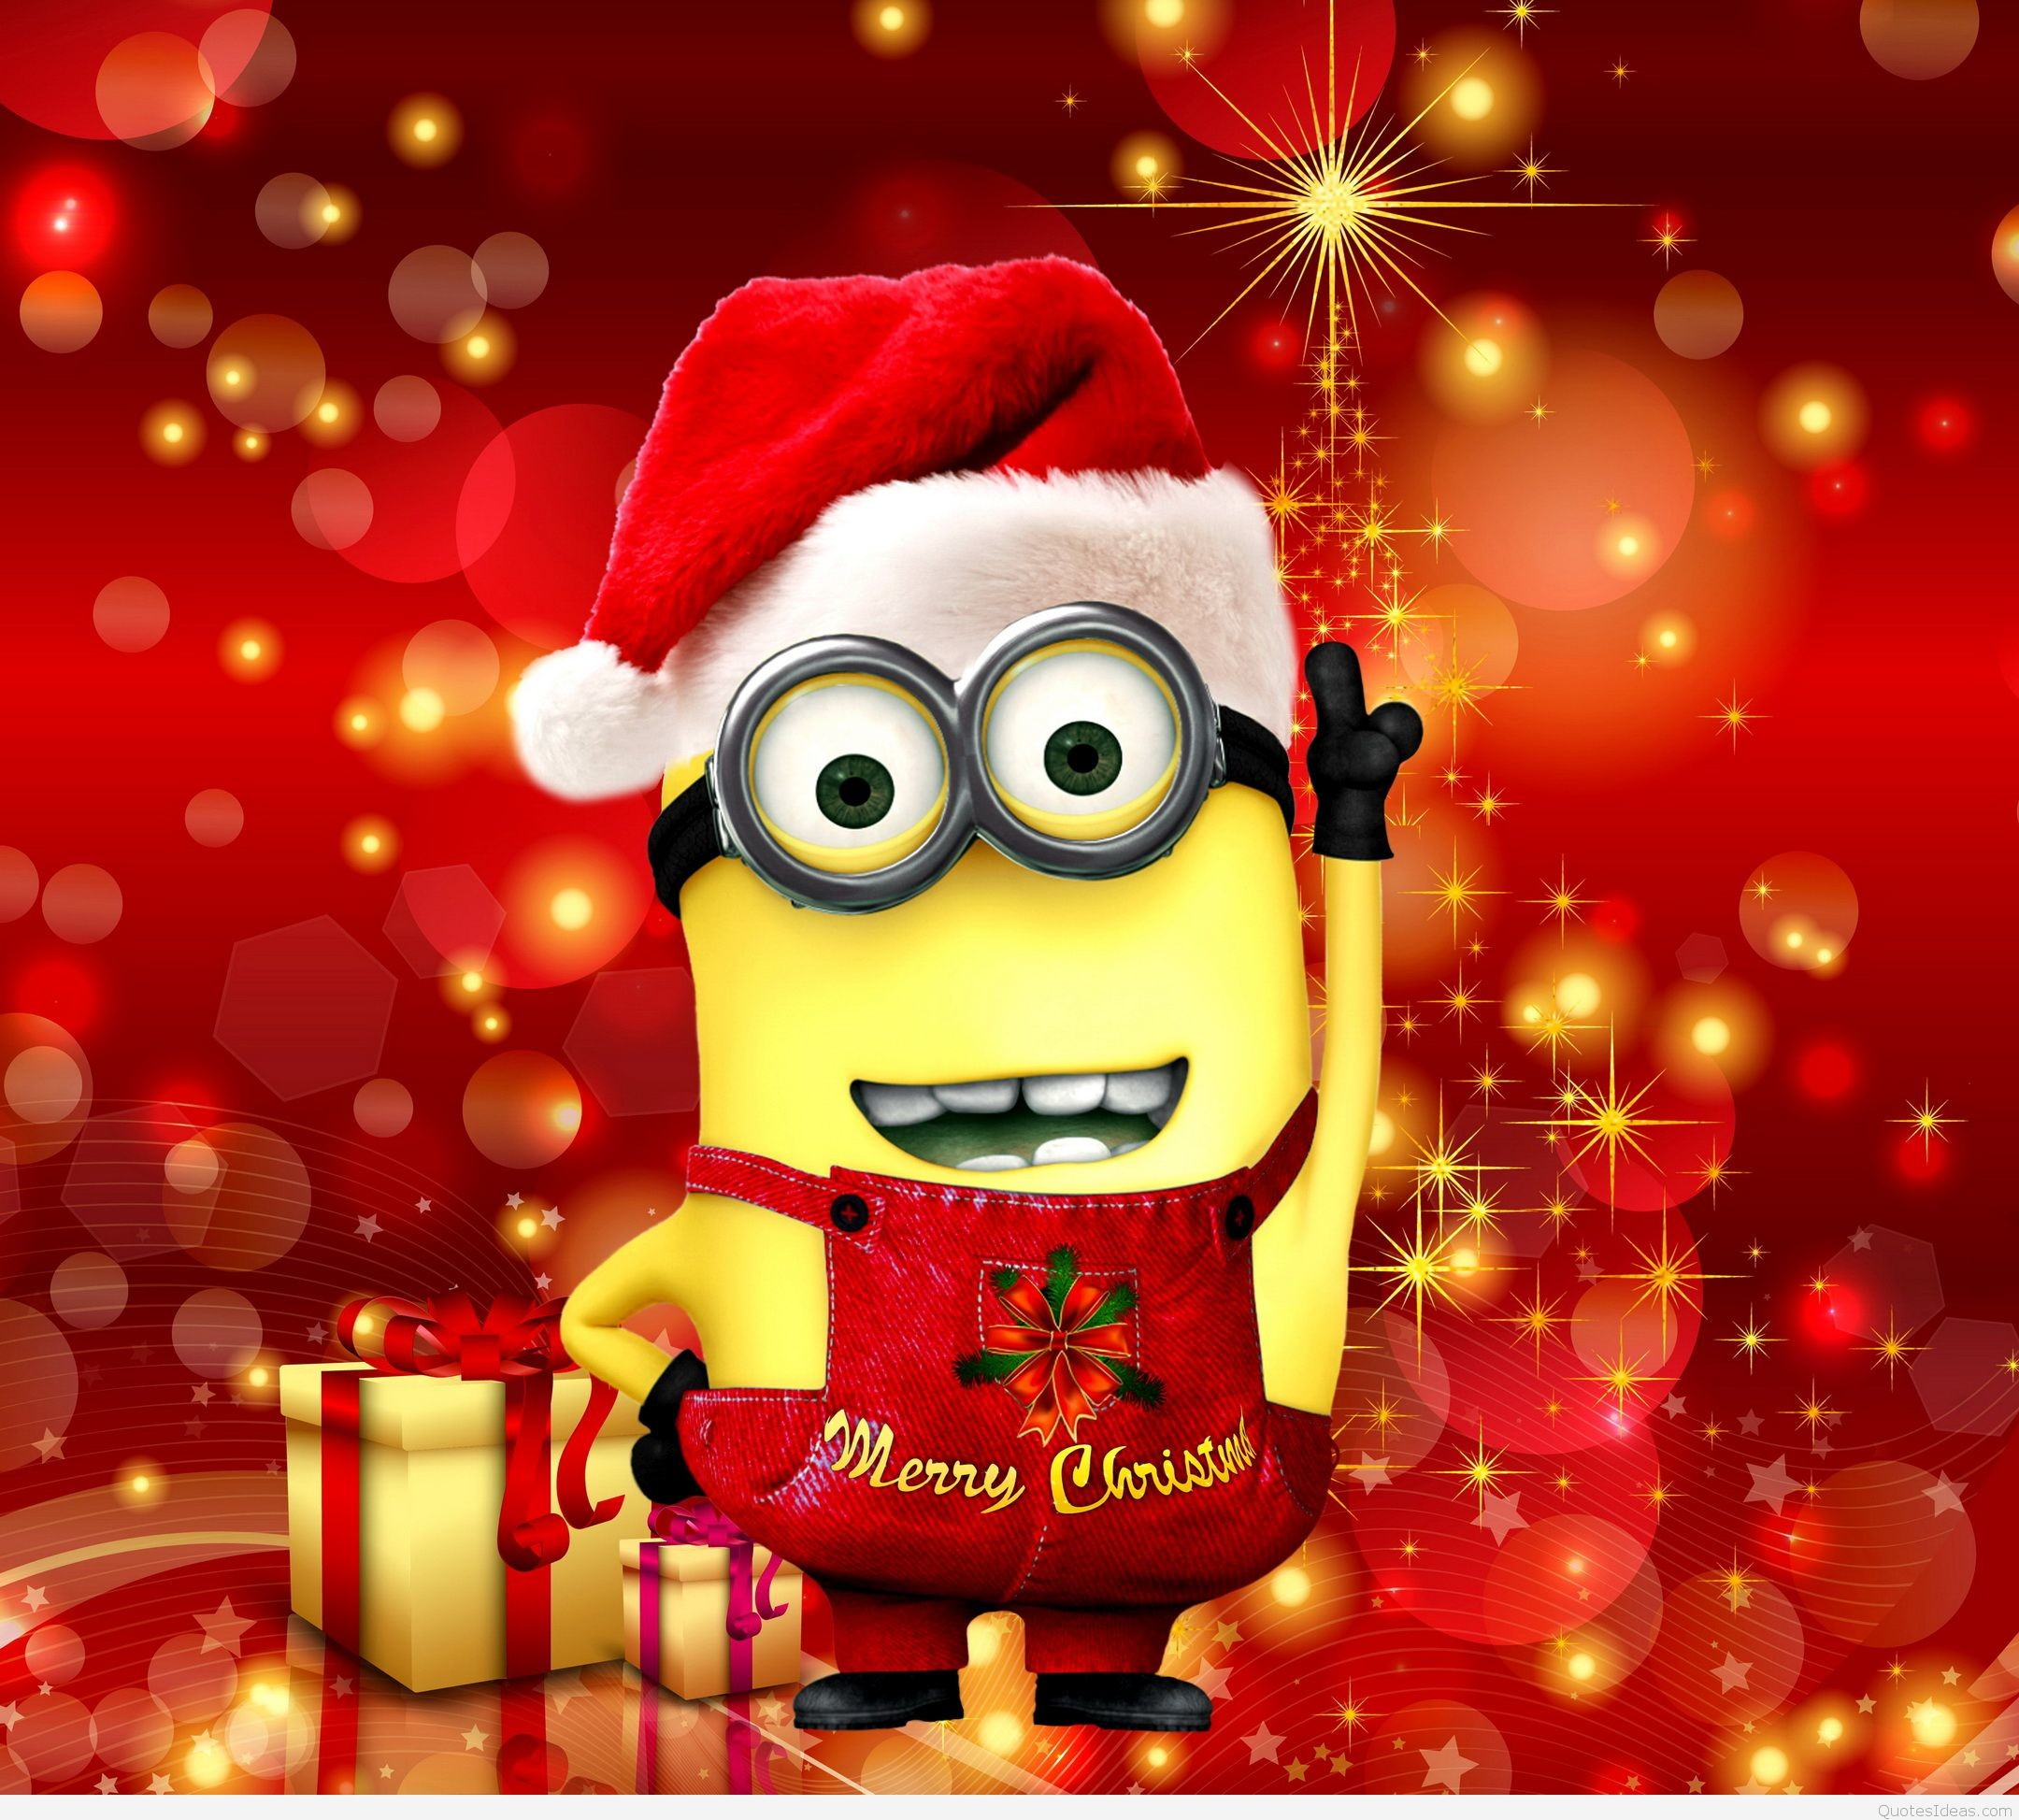 Minions Christmas Images